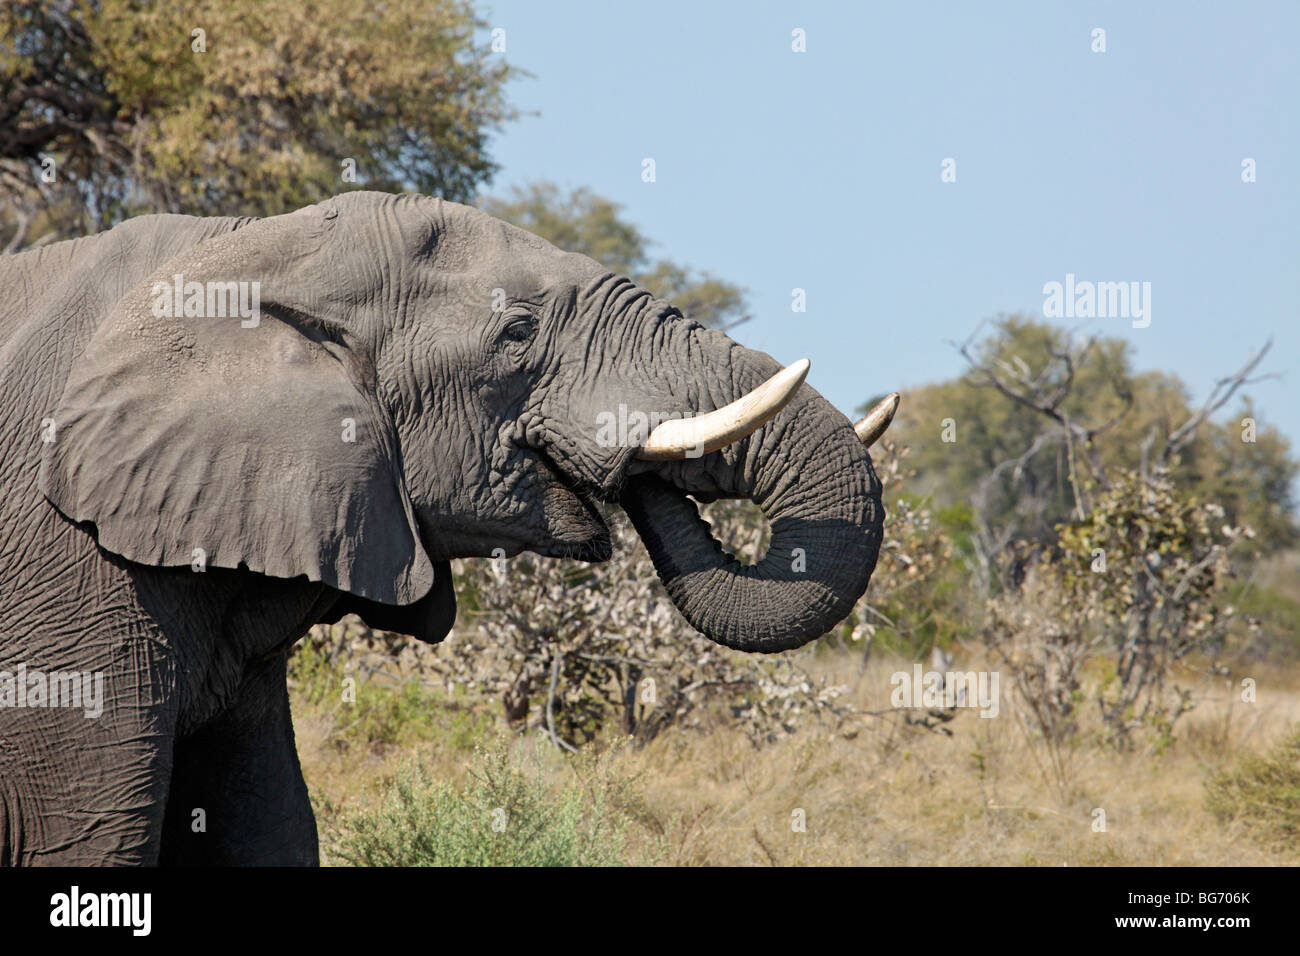 Profile Of A Male African Elephant, Drinking By Putting